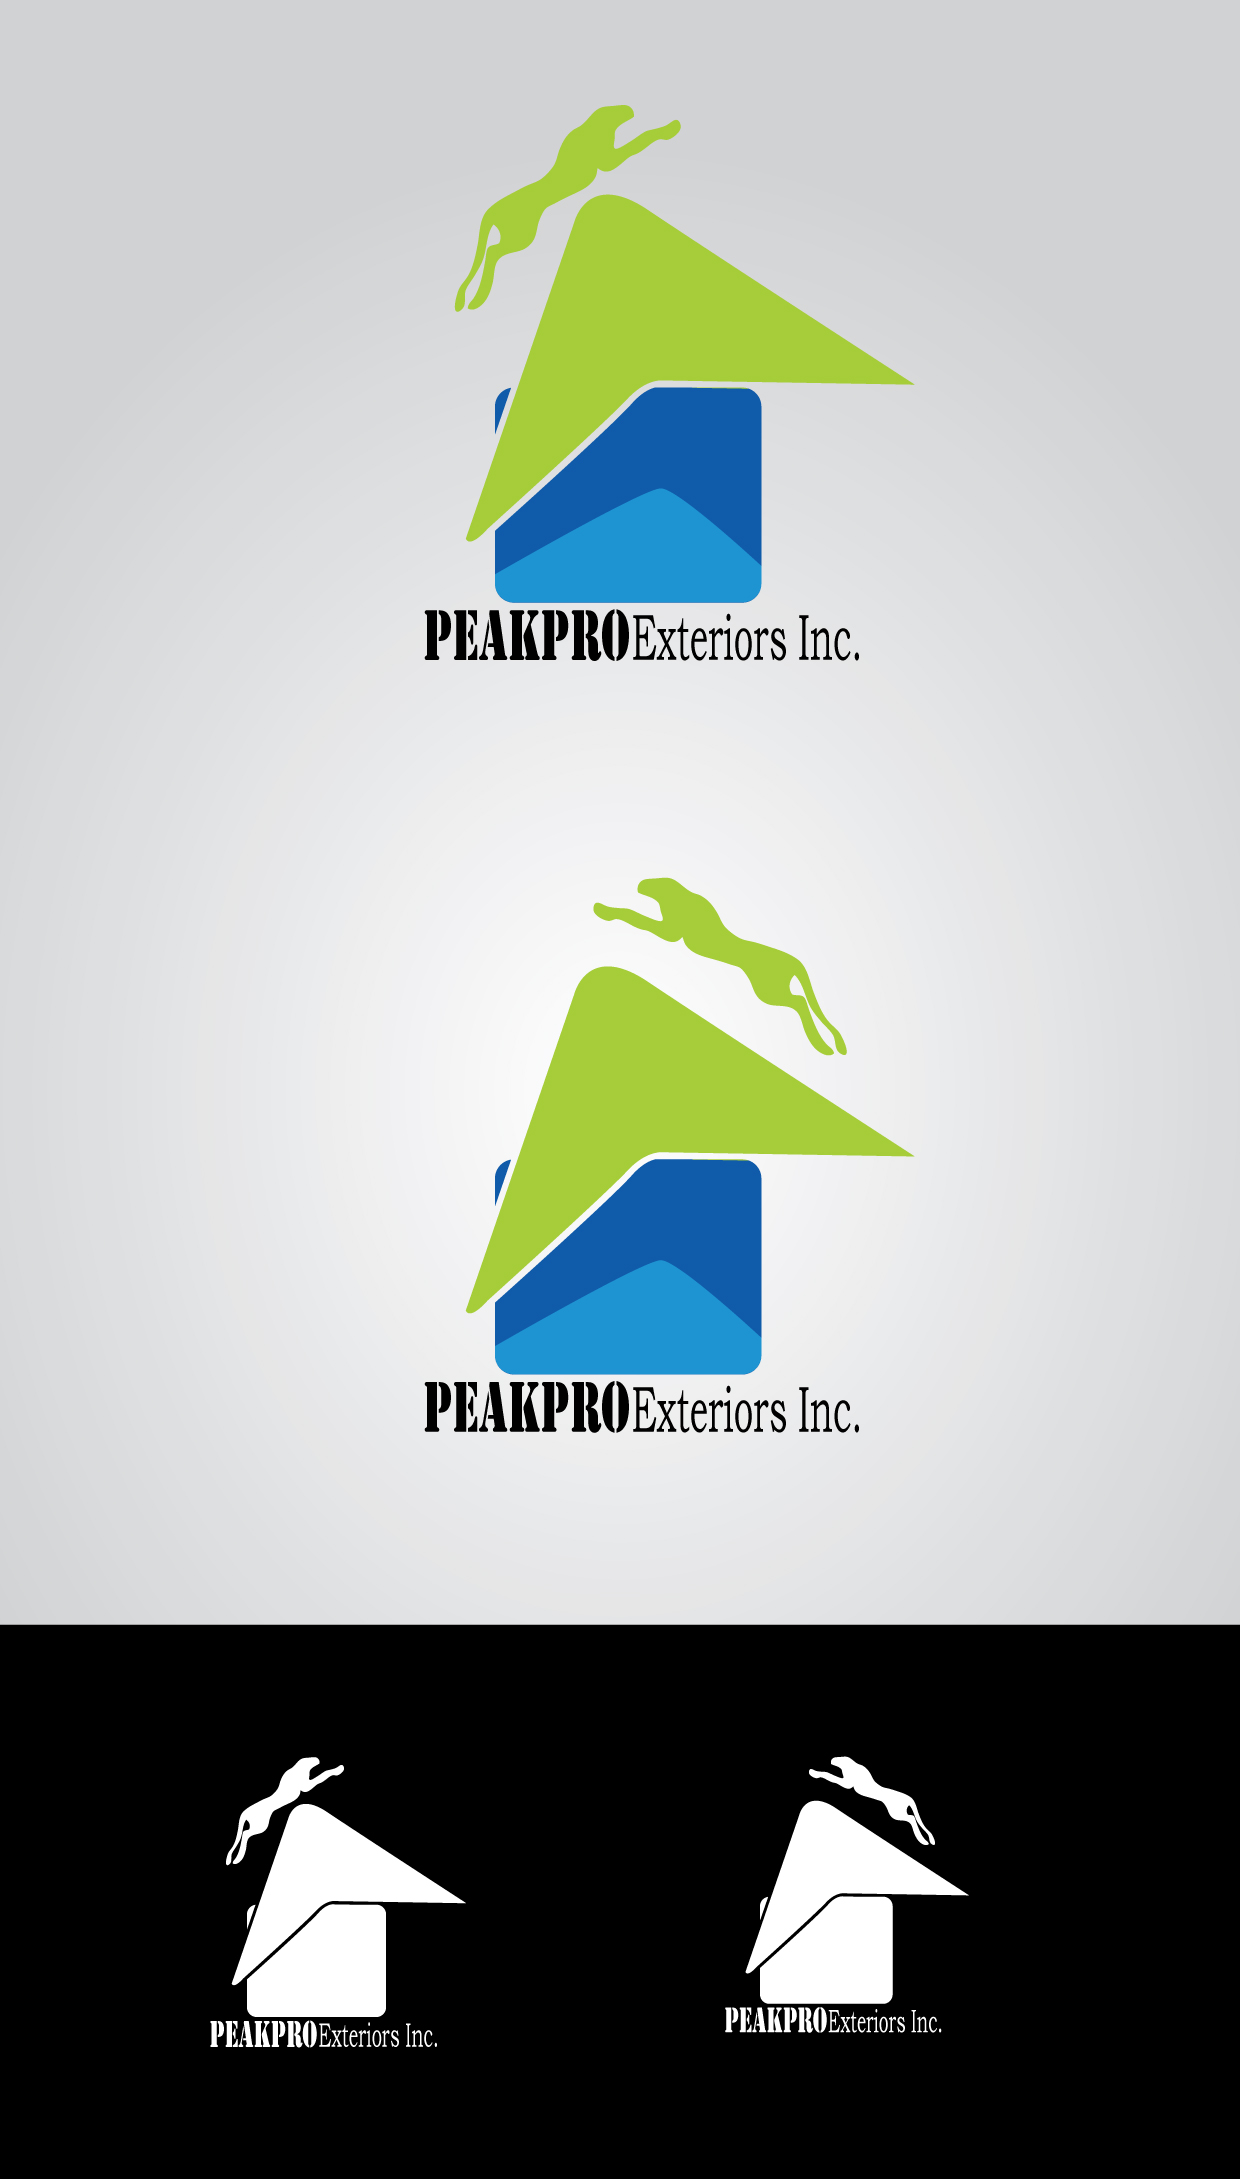 Logo Design by mediaproductionart - Entry No. 104 in the Logo Design Contest Captivating Logo Design for Peakpro Exteriors Inc..